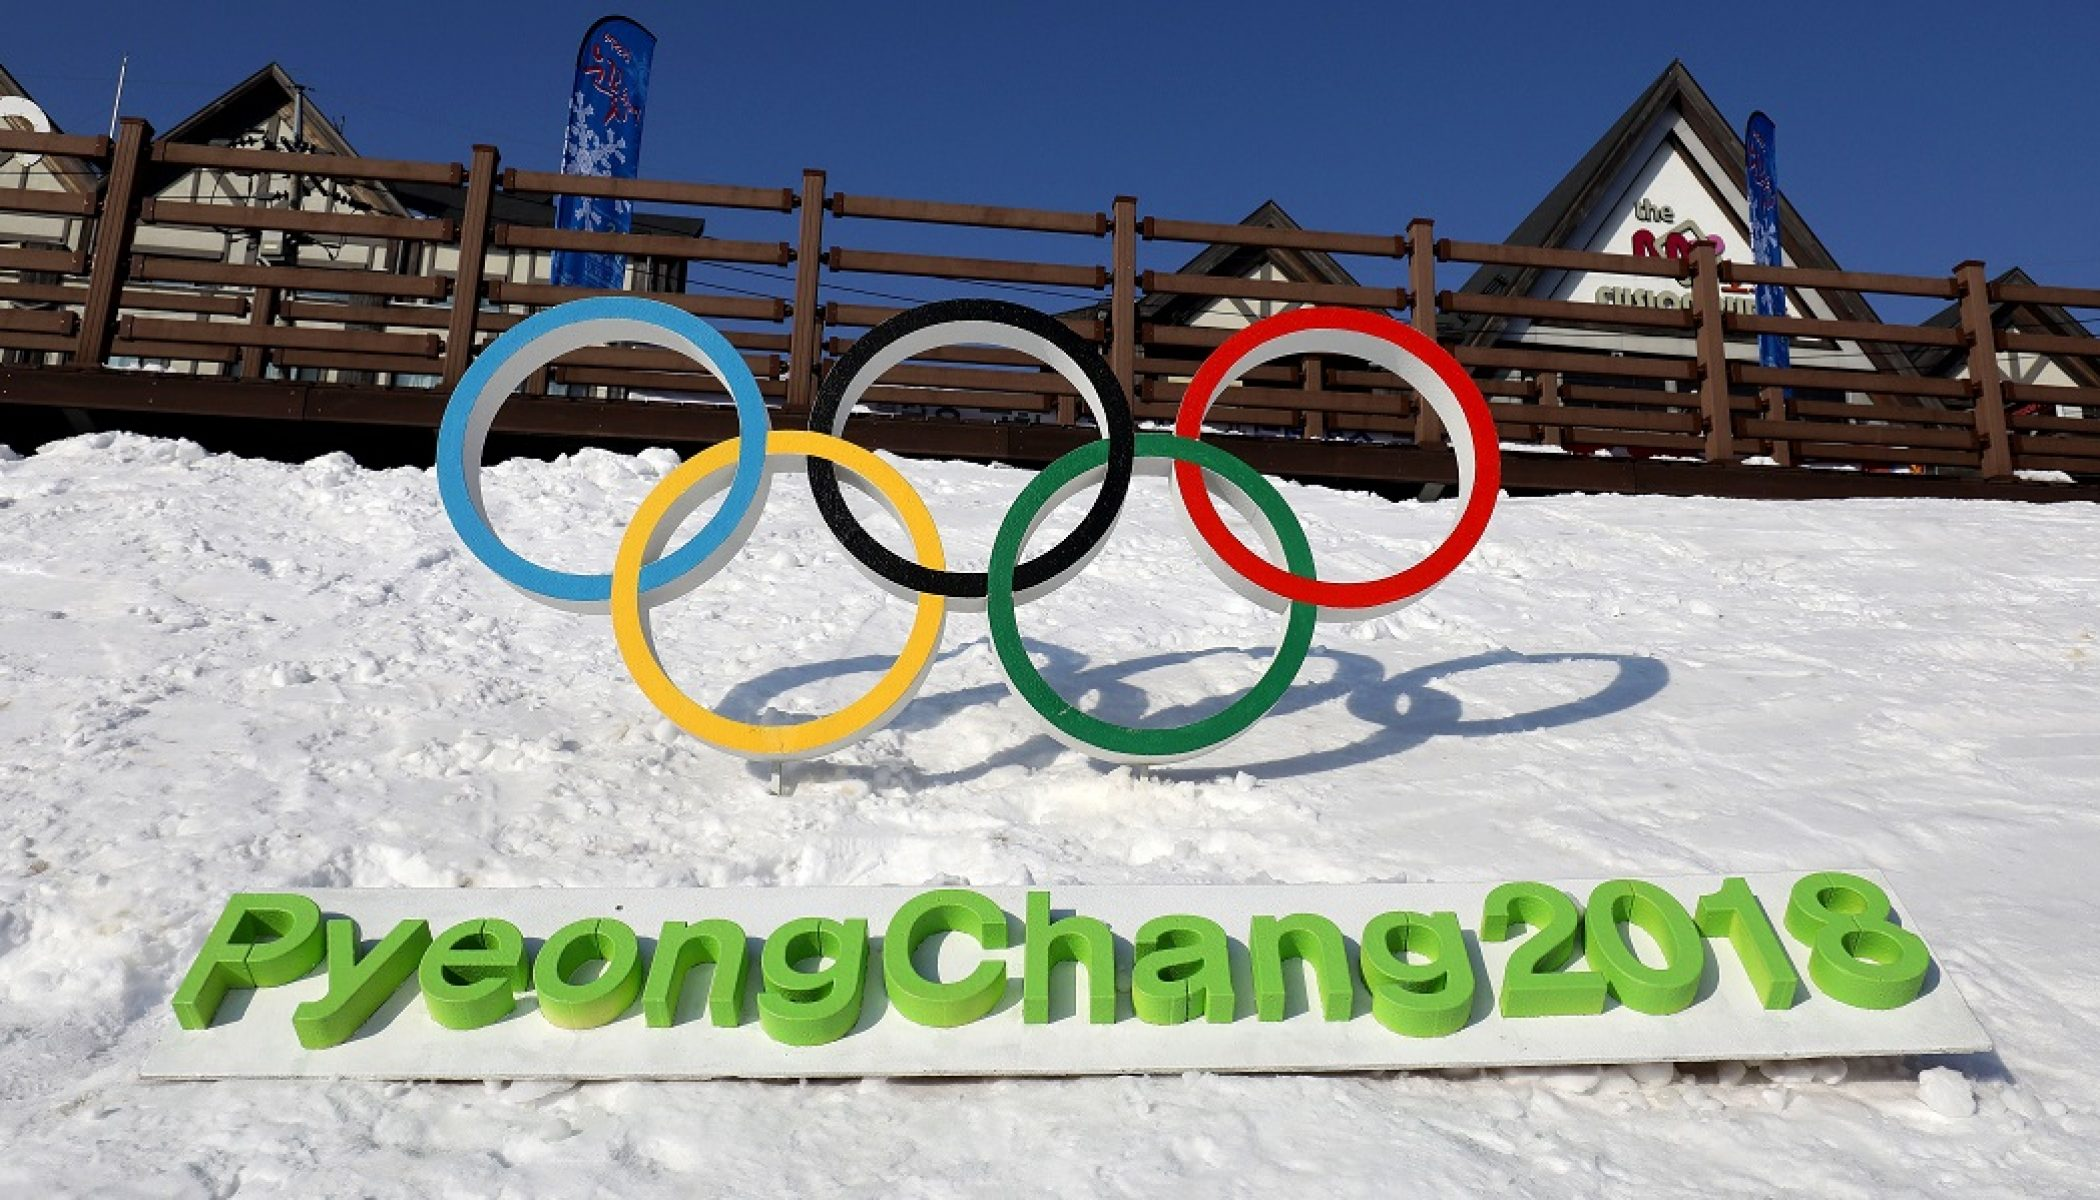 Pyeongchang 2020 Olympic Winter Games Schedule.How Atpi Sports Events Planned For The Pyeongchang 2018